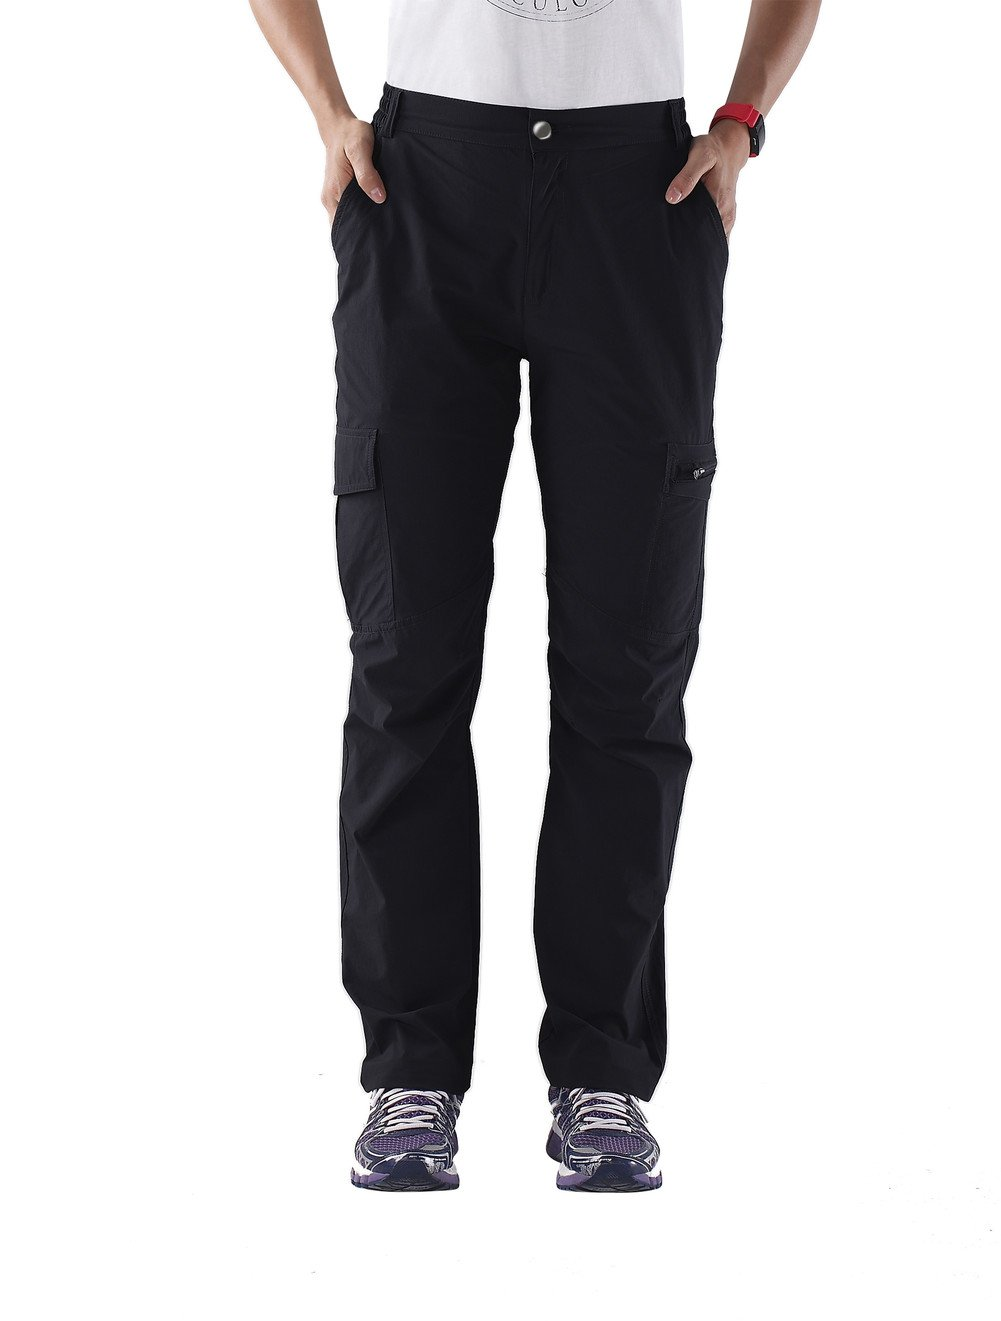 Nonwe Women's Outdoor Quick Drying Water-Resistant Cargo Pants Black XL/29 Inseam by Nonwe